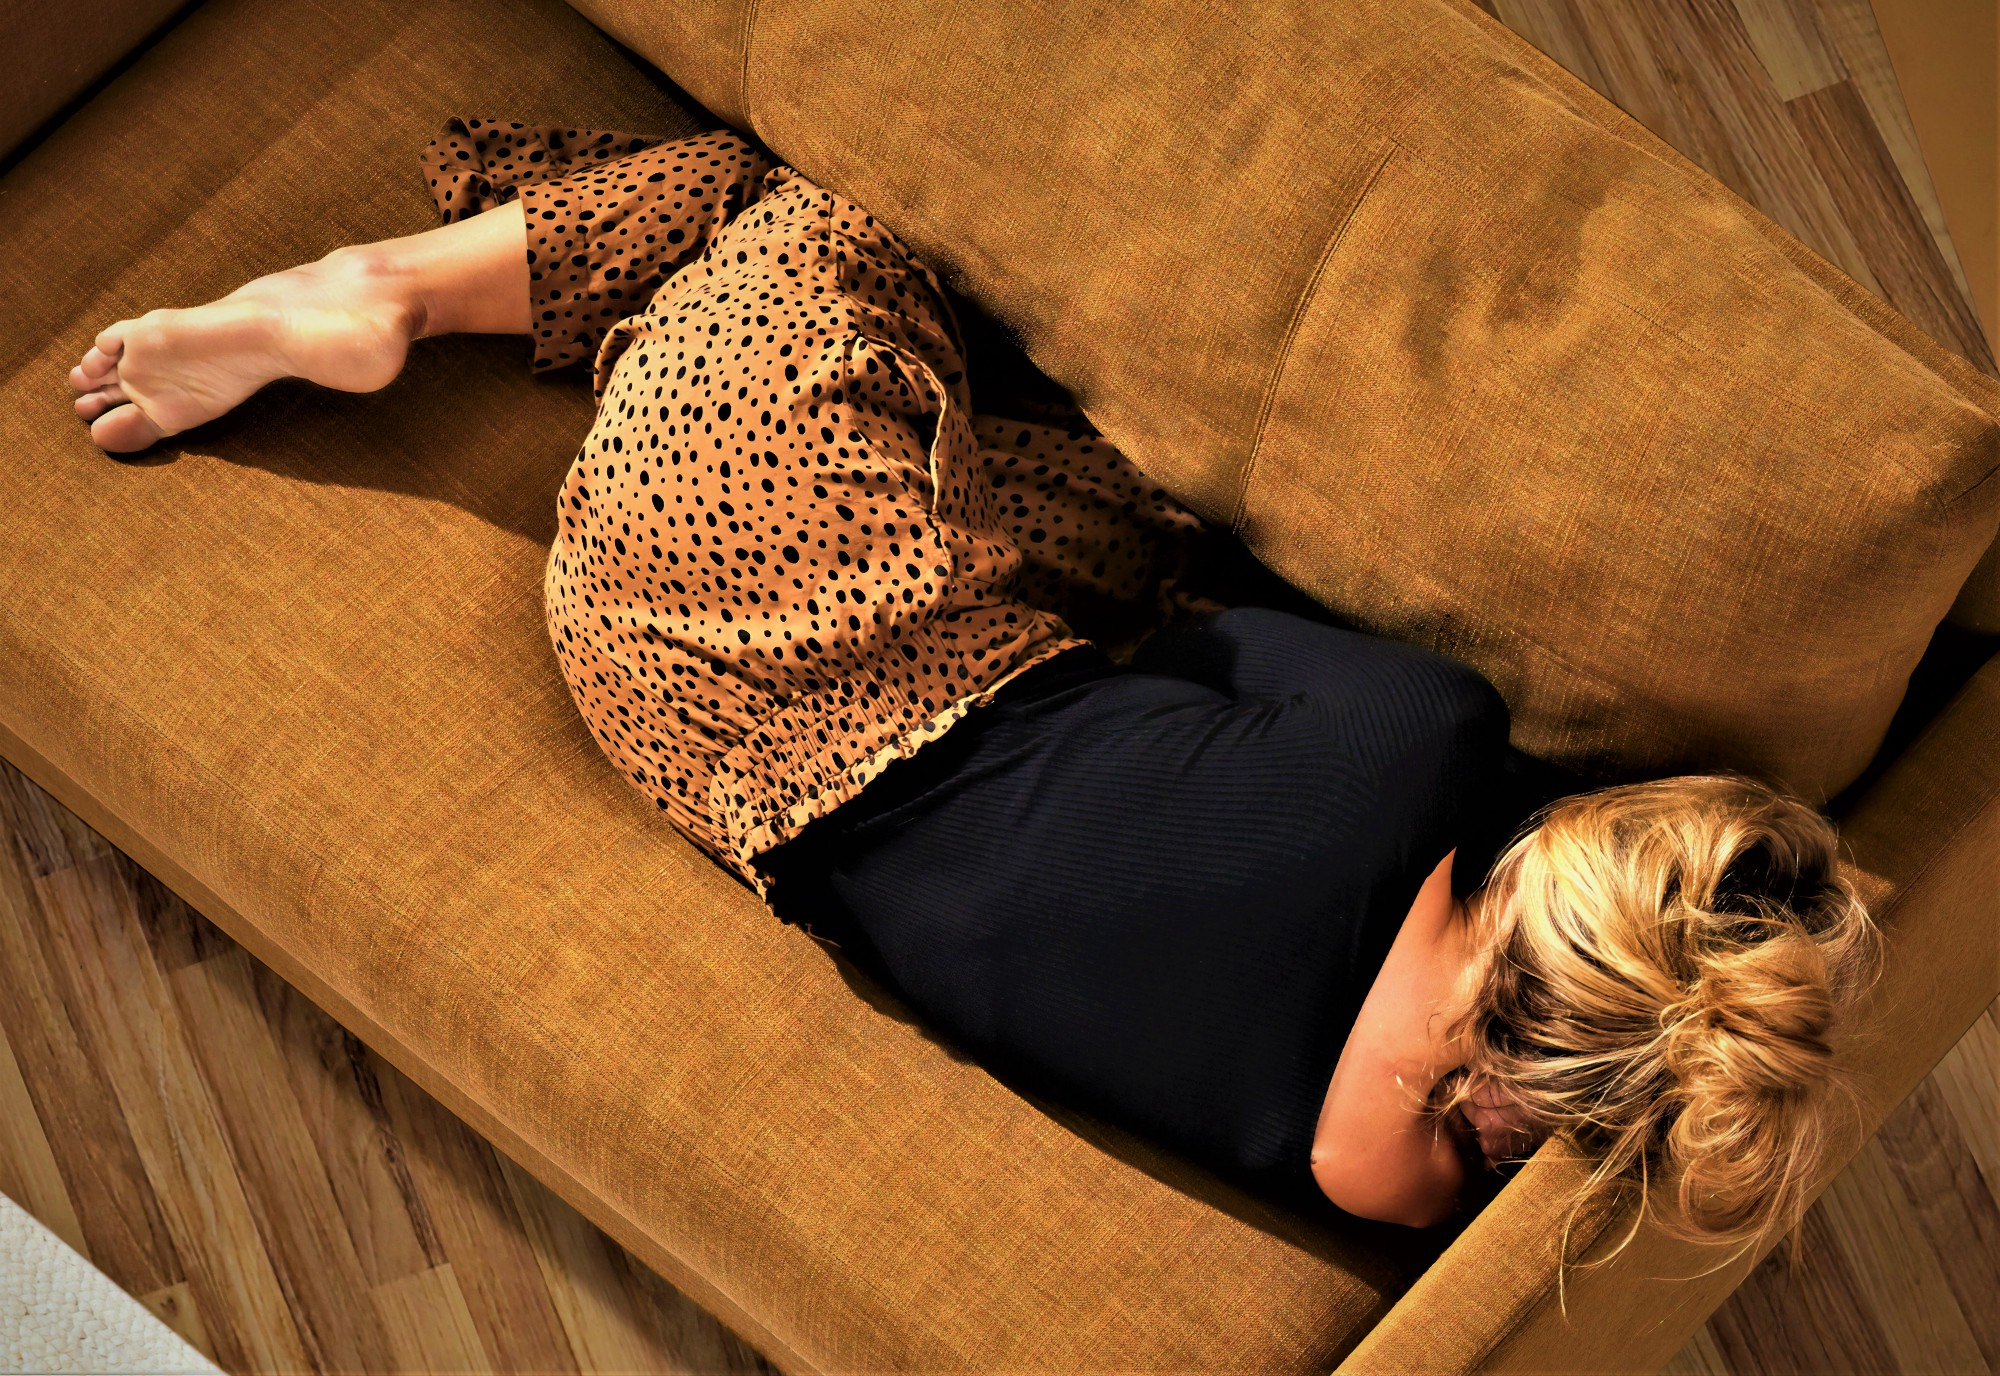 girl with blond hair wearing black top curled up on tan couch